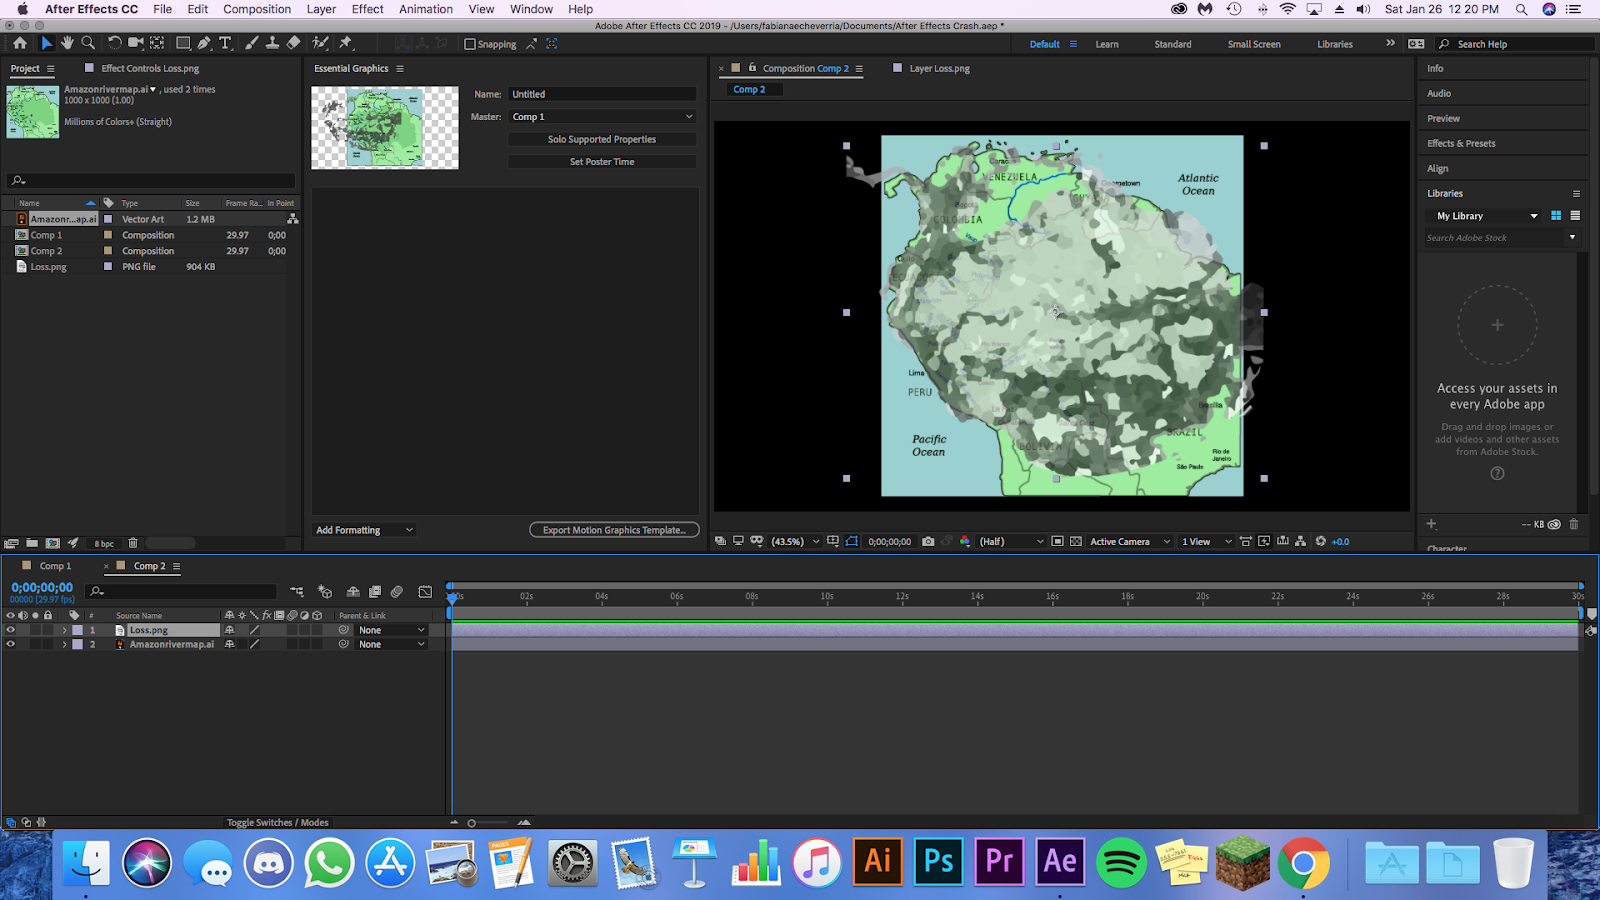 How to animate a map in Adobe After Effects - Storybench